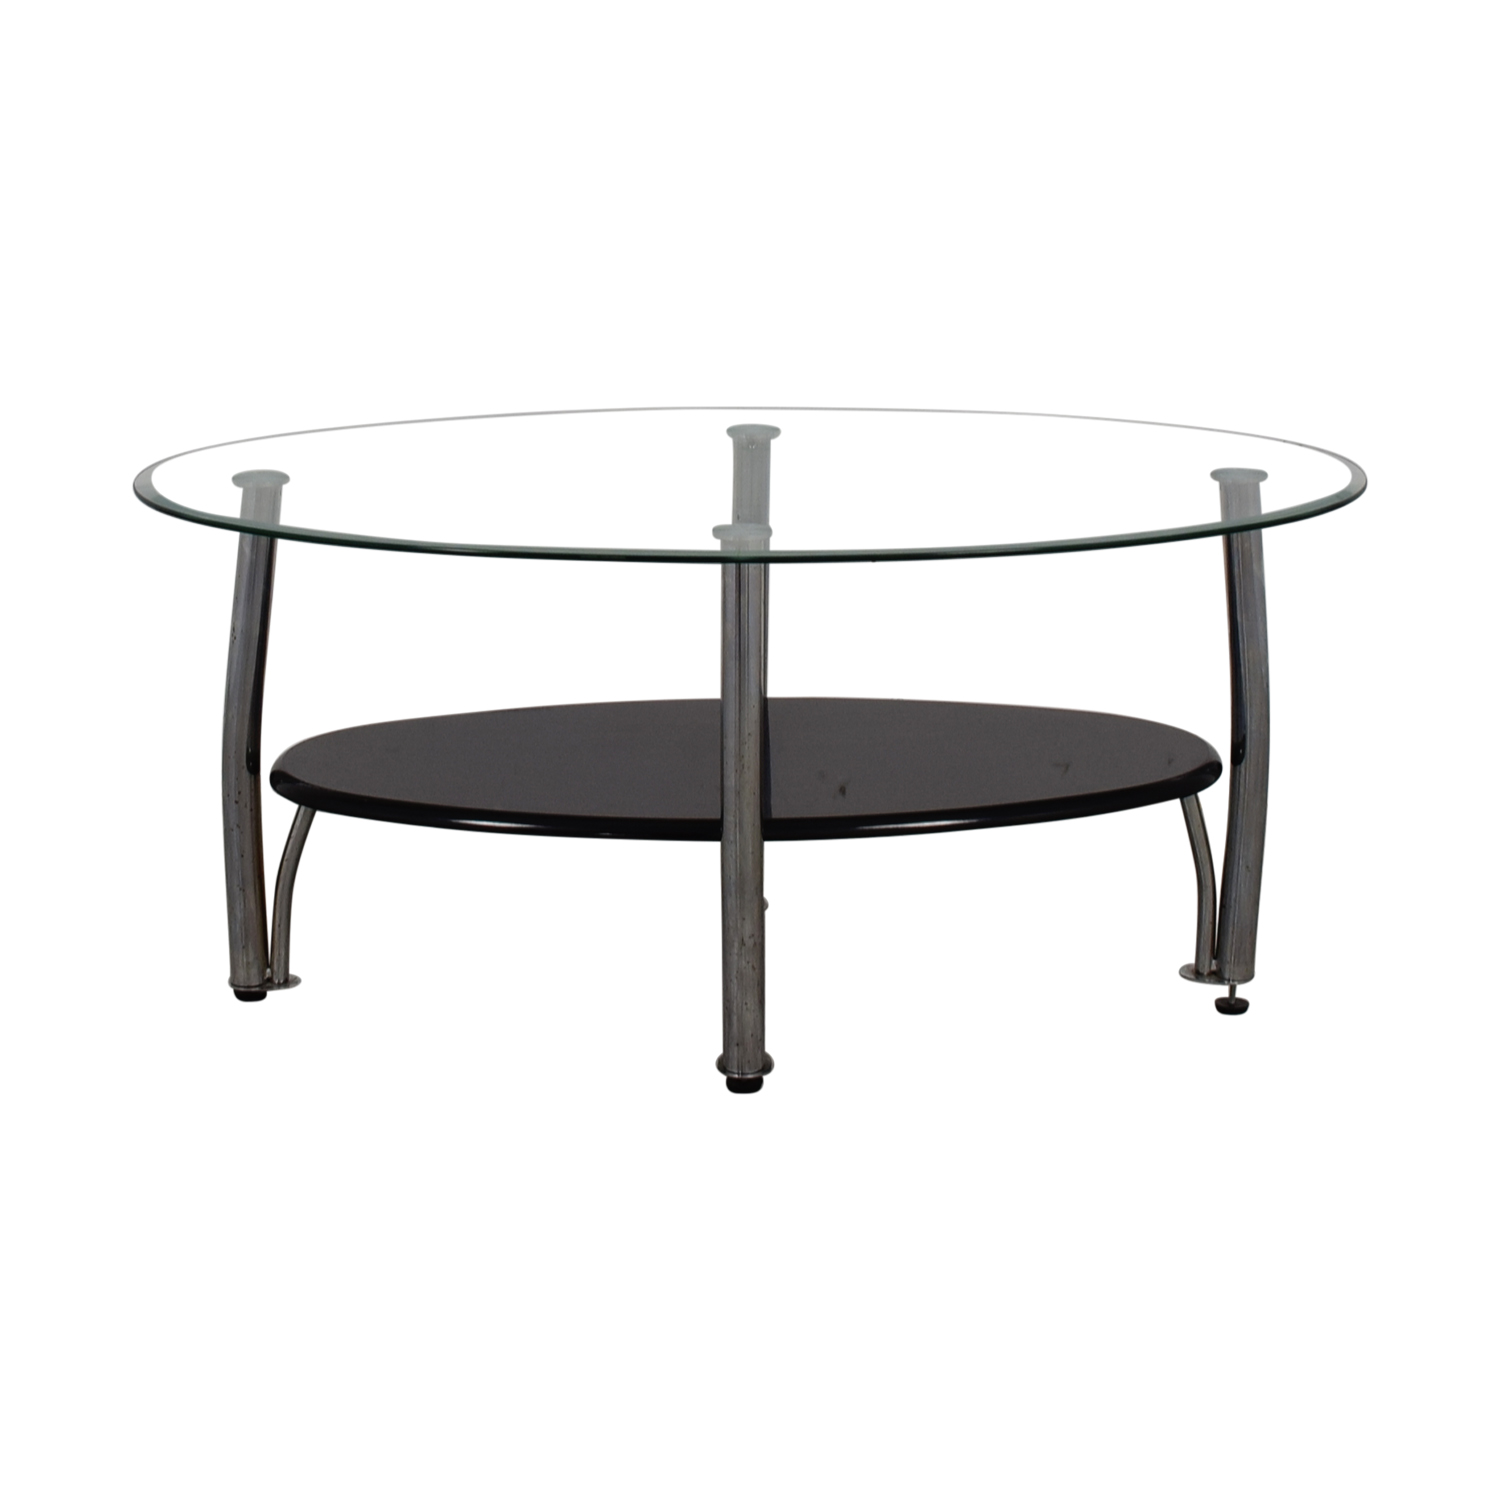 Ashely Furniture Ashely Furniture Oval Glass and Black Coffee Table Tables